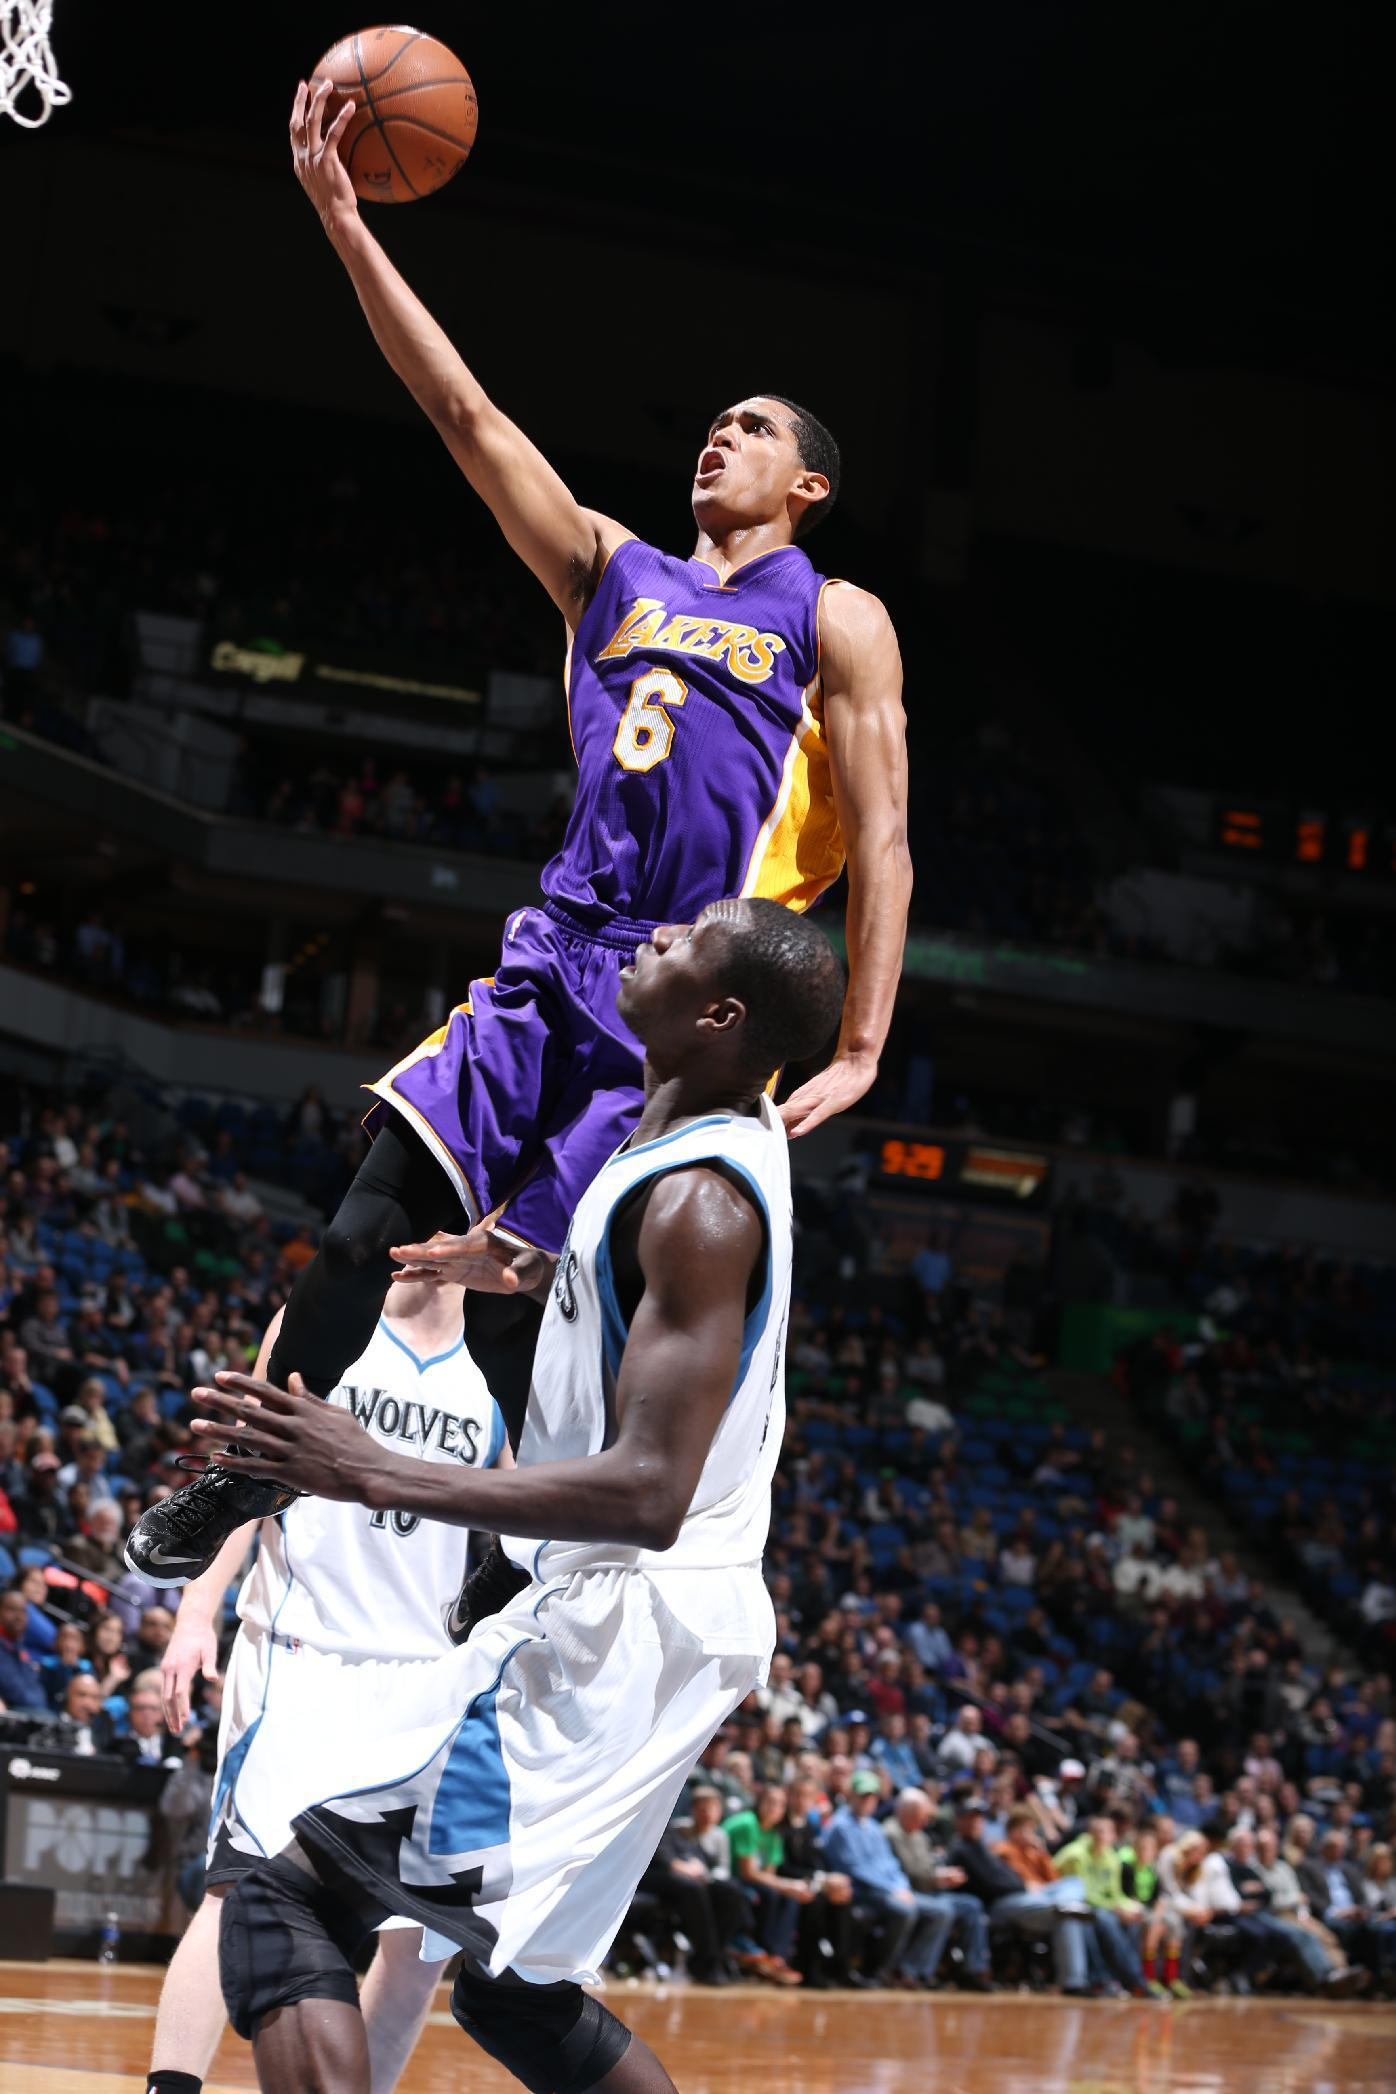 Clarkson shines in OT to lead Lakers over Wolves, 101-99